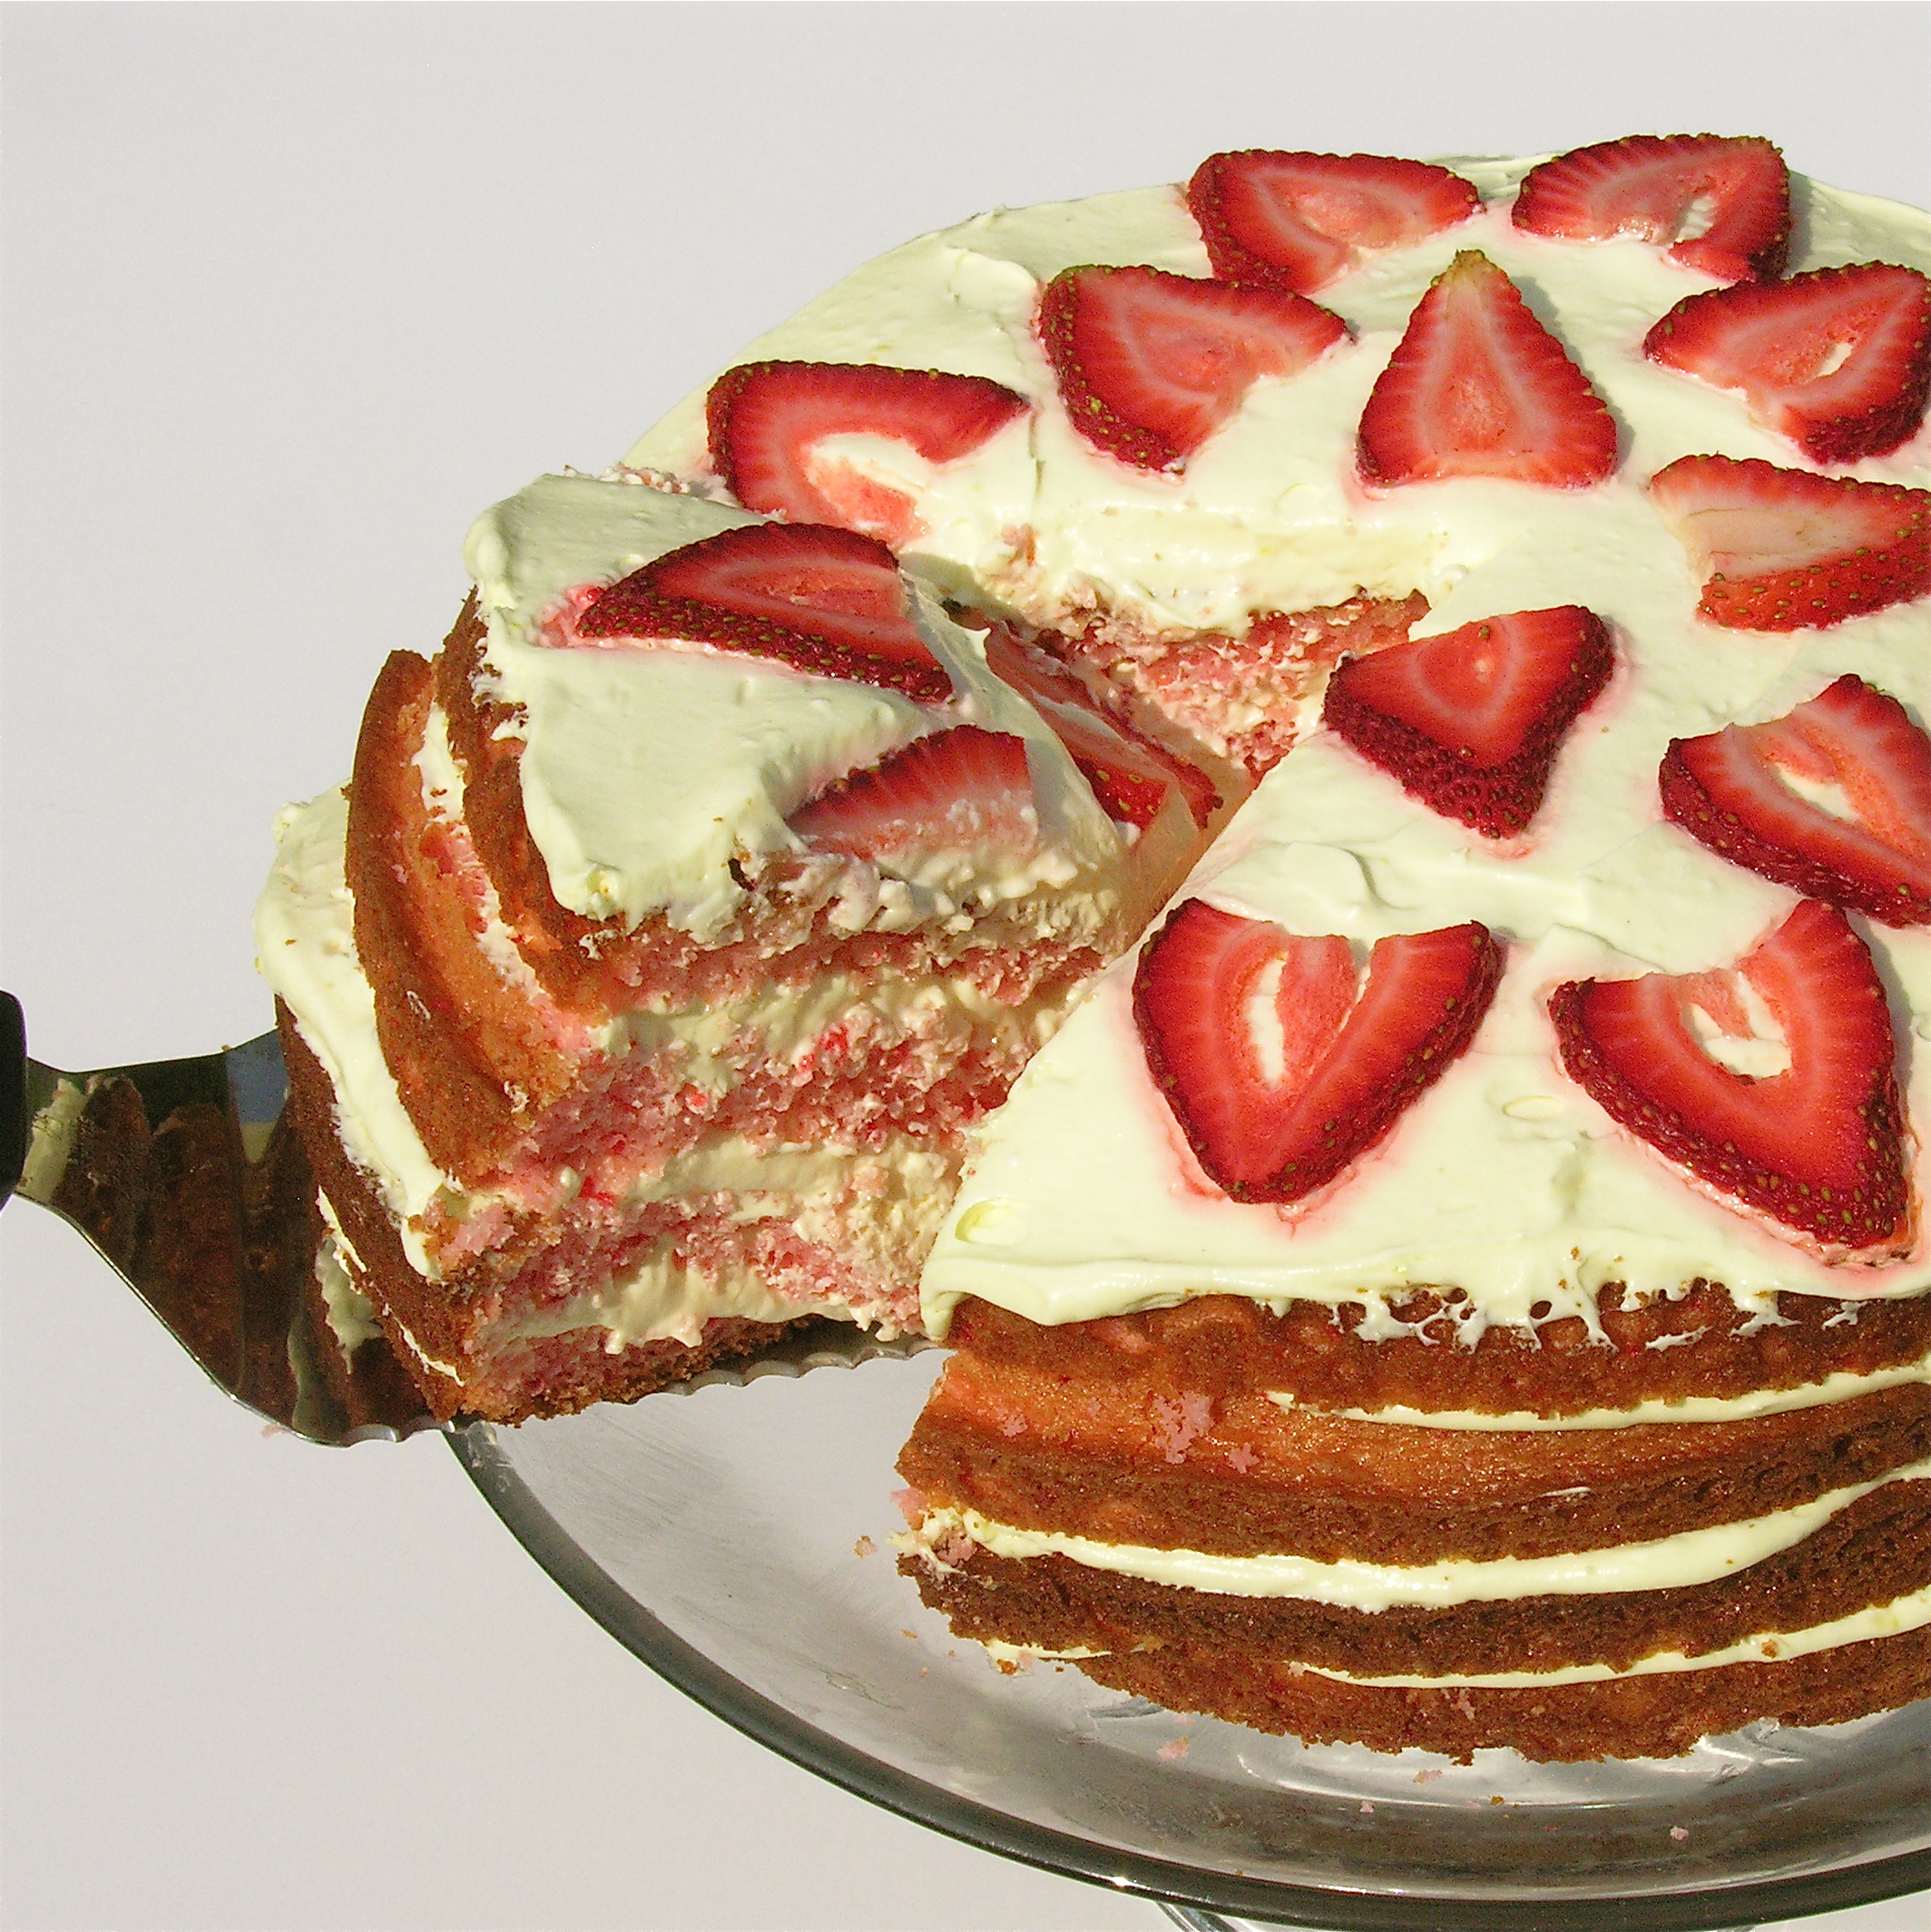 Images Of Strawberry Layer Cake : Strawberry Lemonade Layer Cake!! eASYbAKED